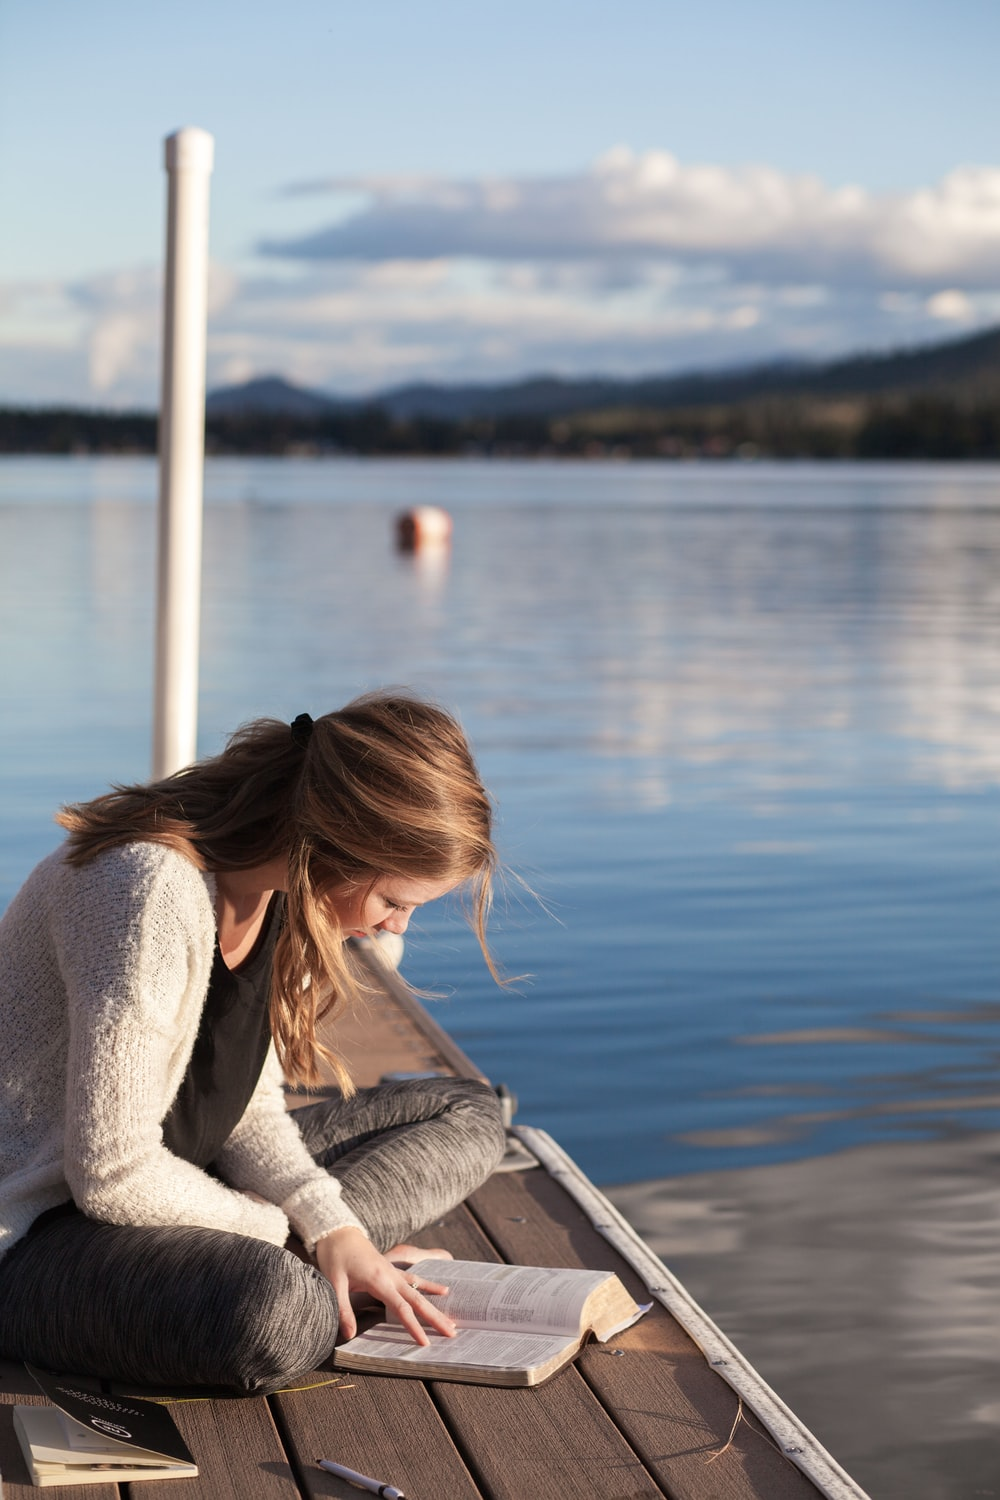 photo of woman reading book near body of water